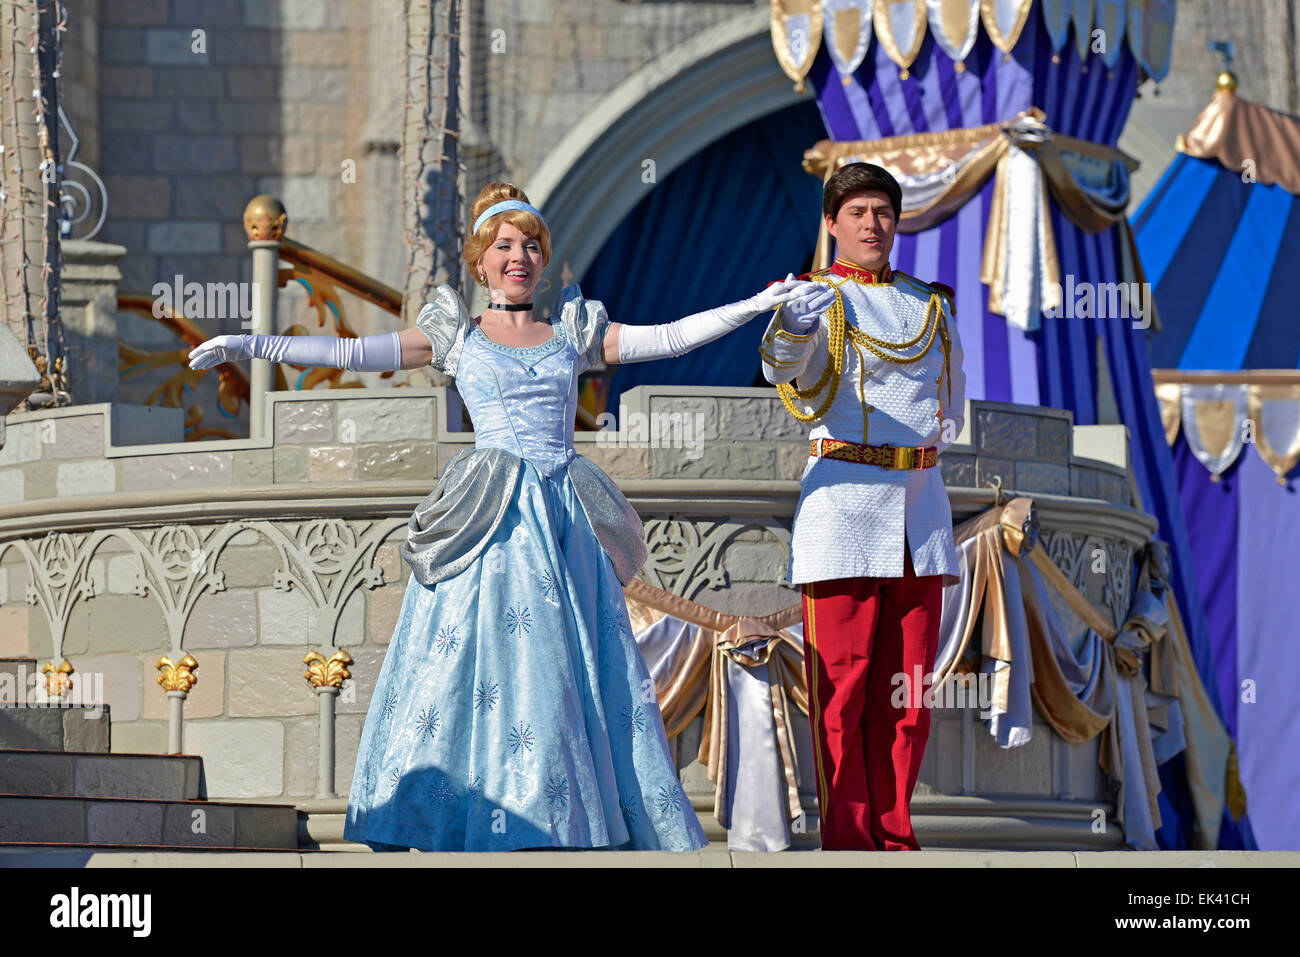 Cinderella, Disney Princess and Prince, Magic Kingdom, Disney World, Orlando Florida Stock Photo